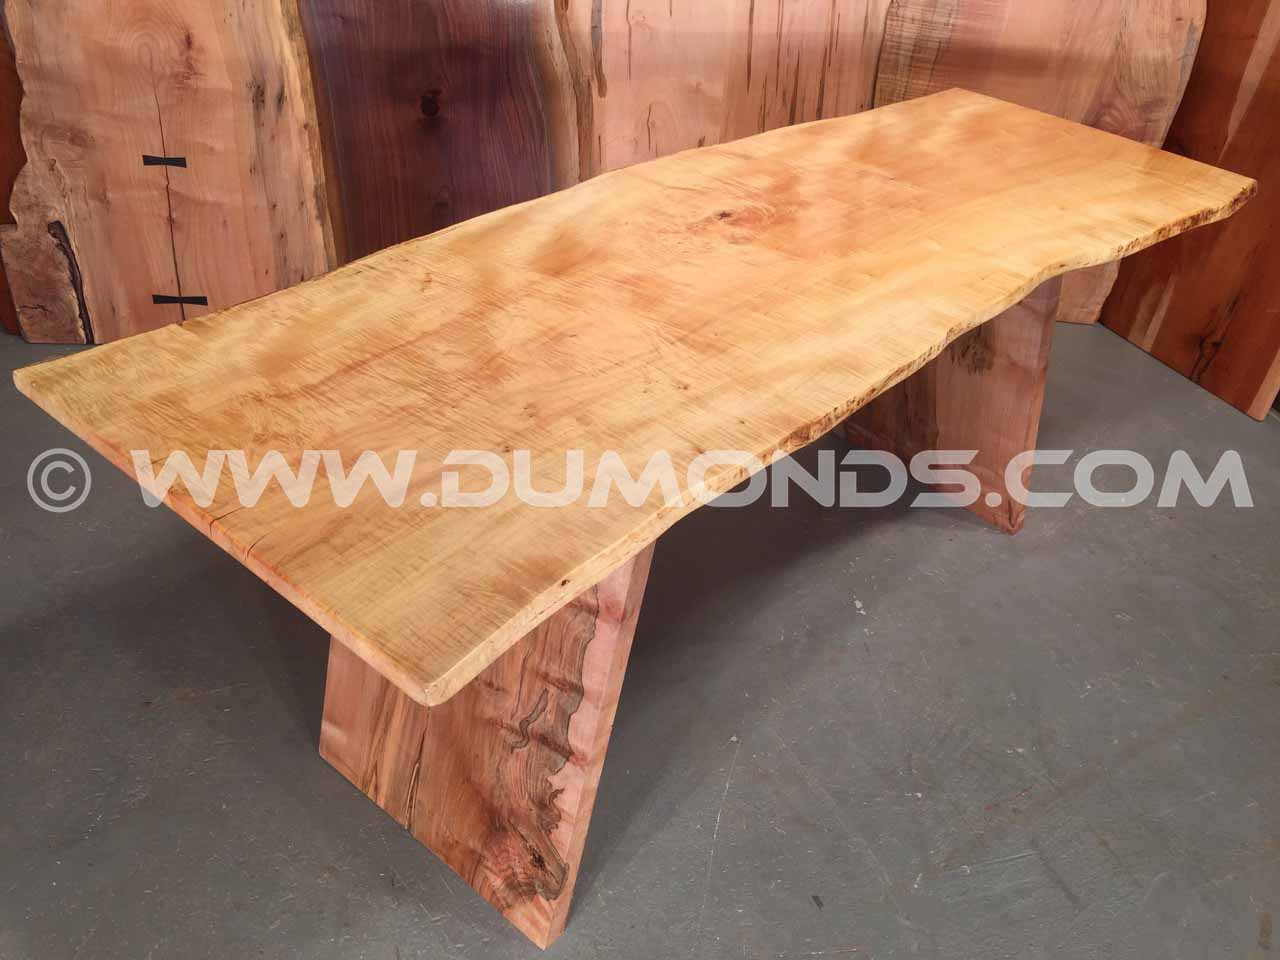 live edge curly maple table